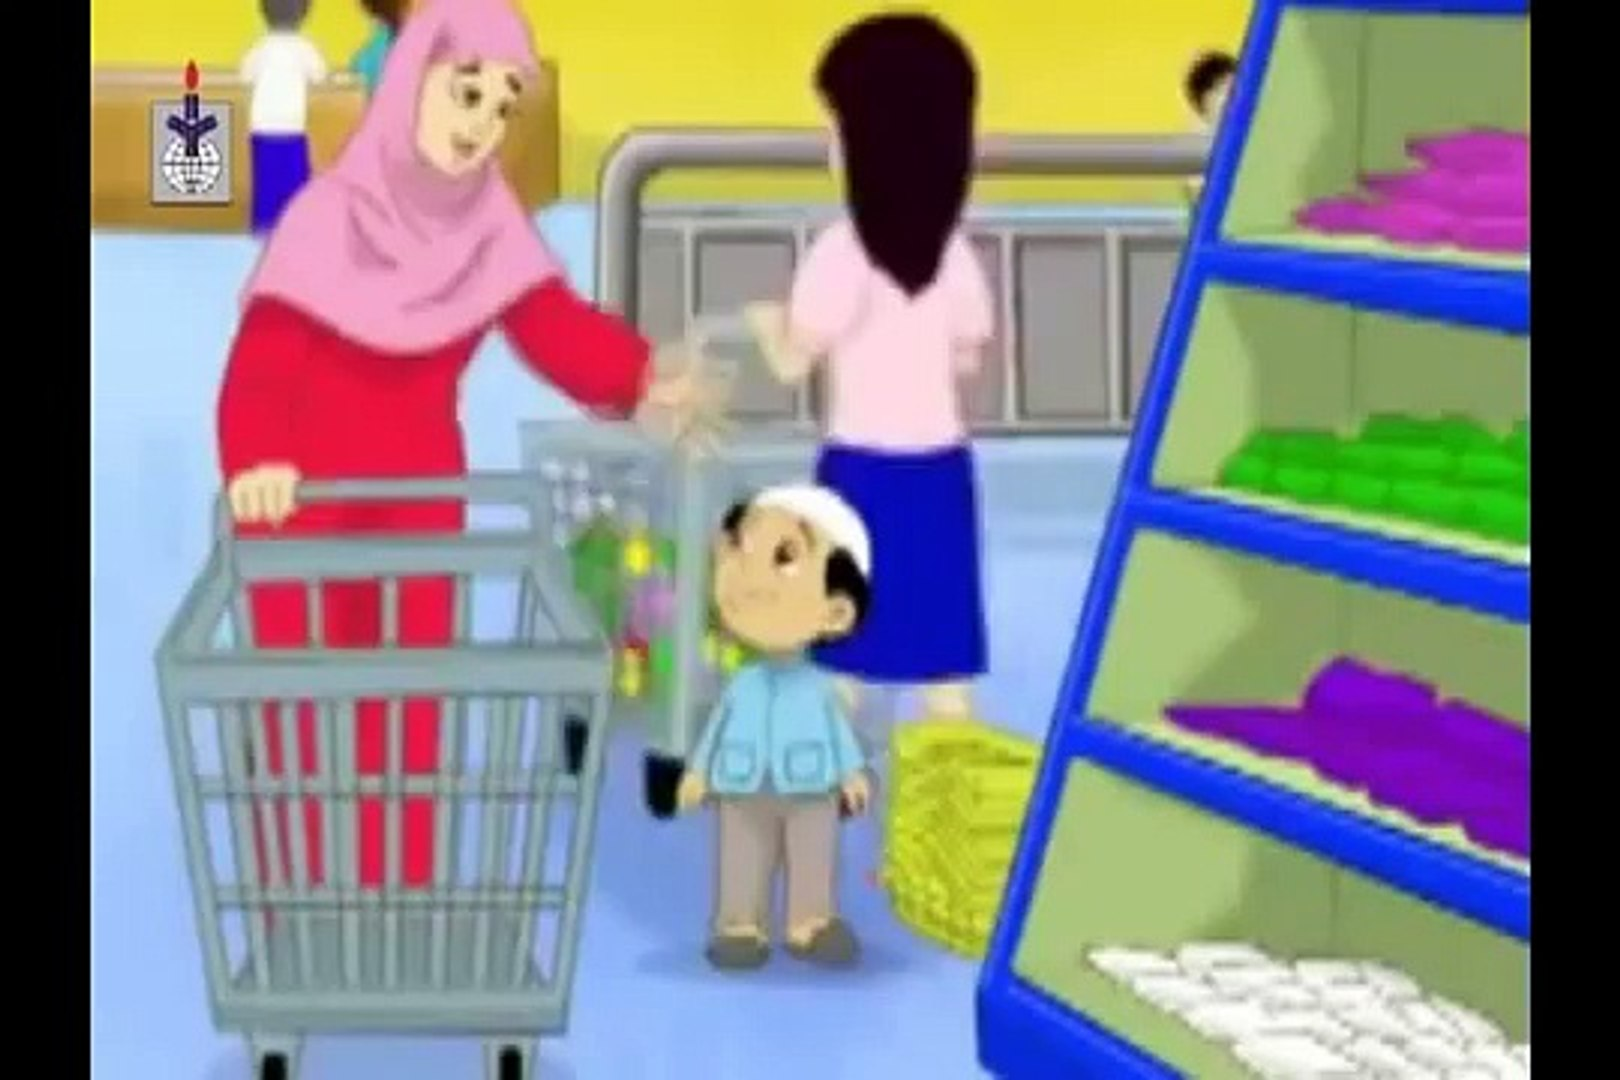 islamic education for kids lesson aboout ISLAM